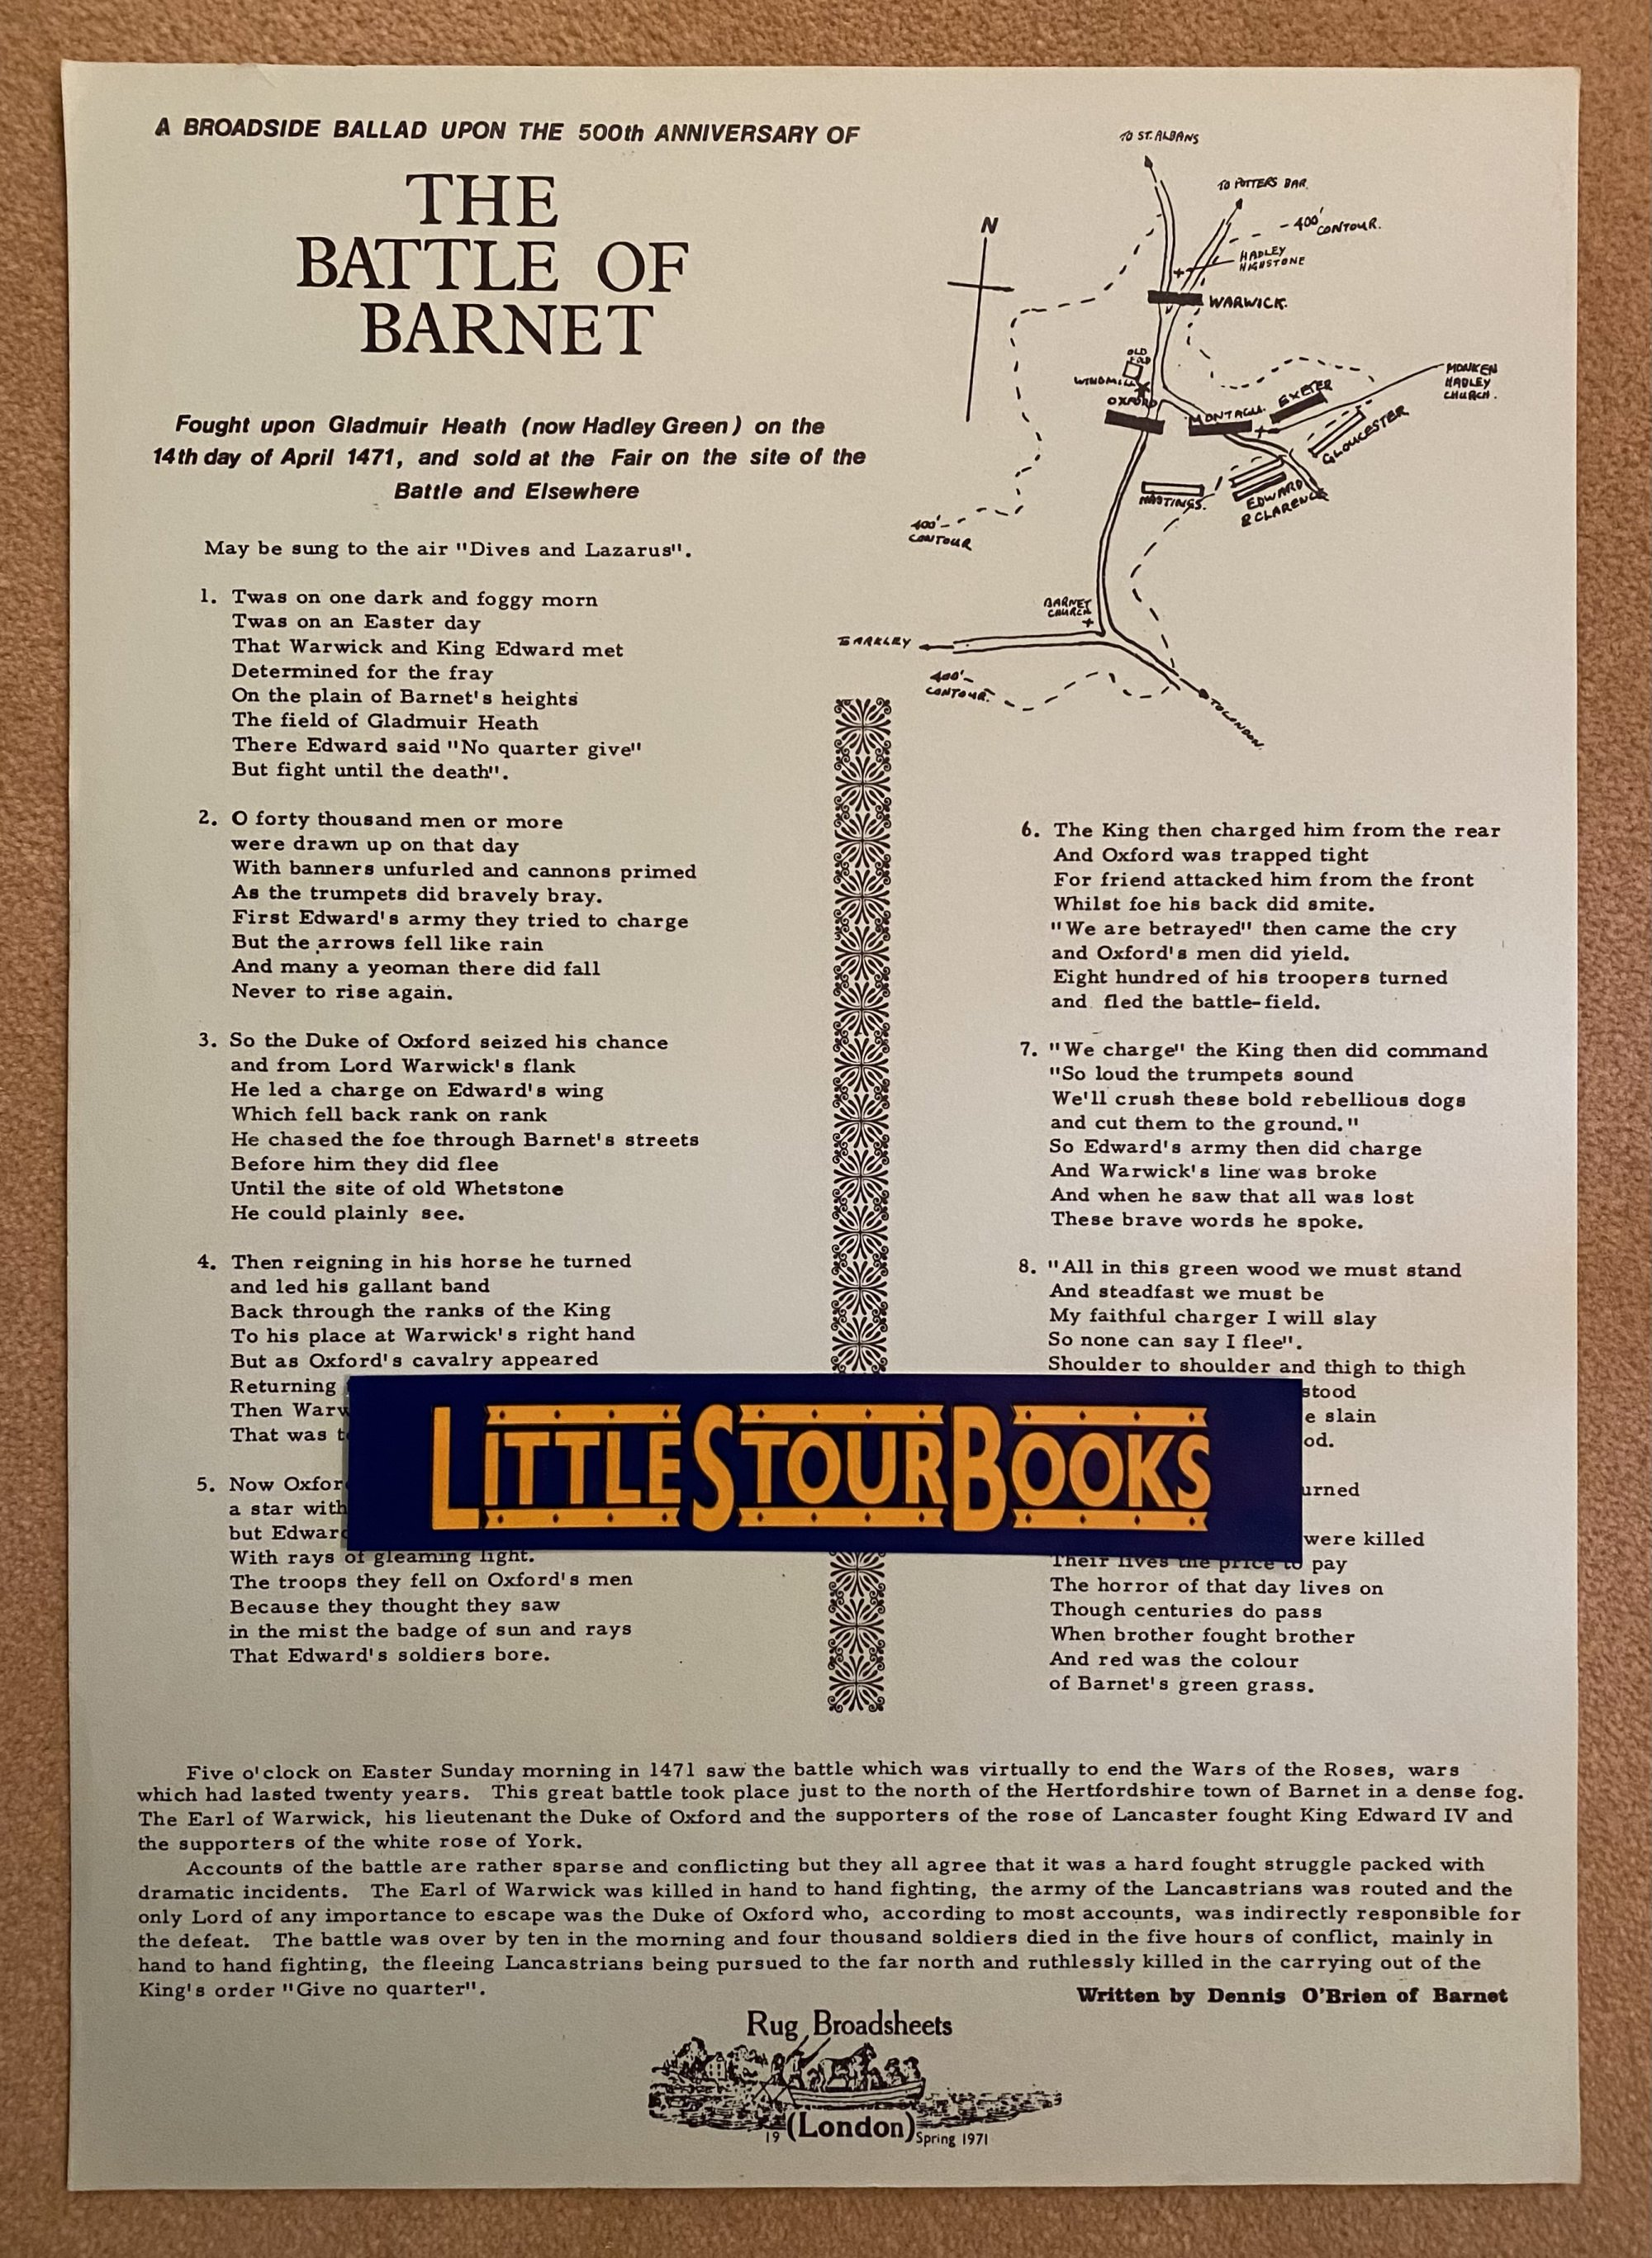 DENNIS O'BRIEN OF BARNET (RUG BROADSHEET) - Rug Broadsheet | Broadside Ballad | Minstrel Song Sheet | A Broadside Ballad Upon the 500th Anniversary of The Battle of Barnet | Fought Upon Gladmuir Heath (now Hadley Green) on the 14th Day of April 1471, and Sold at the Fair on the Site of the Battle and Elsewhere | Maybe Sung to the Air 'Dives and Lazarus'.